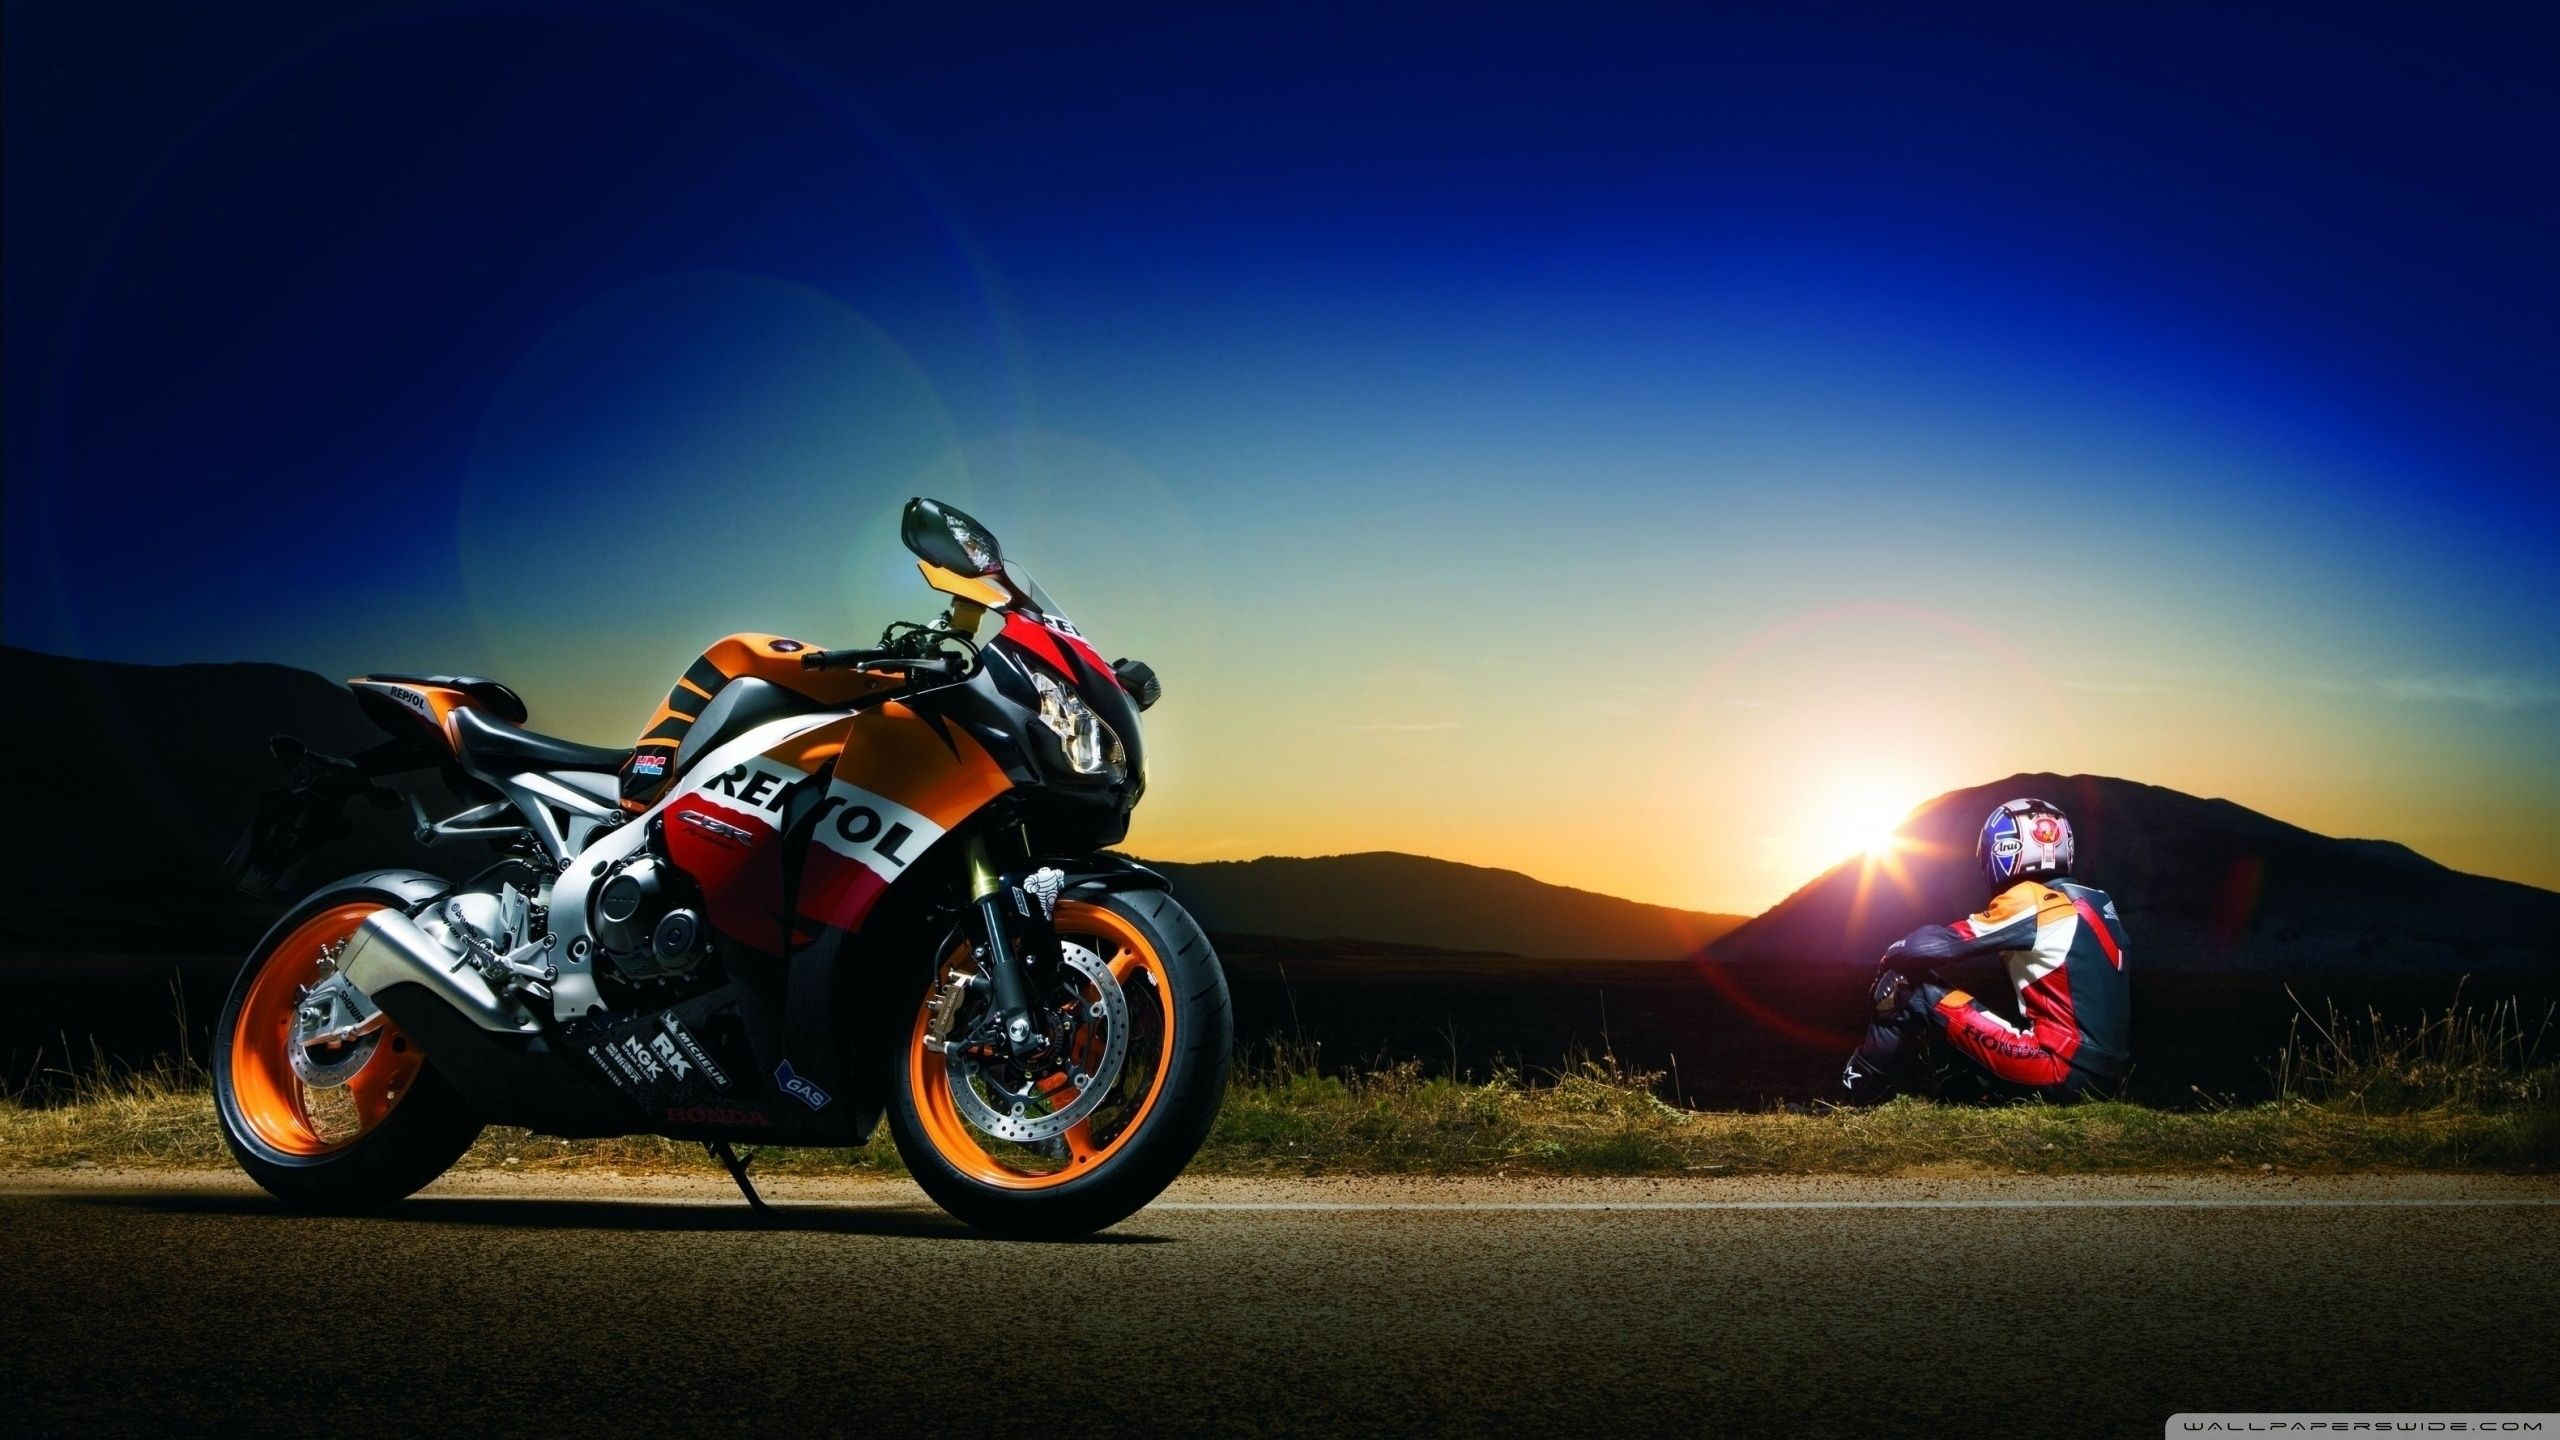 Honda Motorcycle Wallpapers Top Free Honda Motorcycle